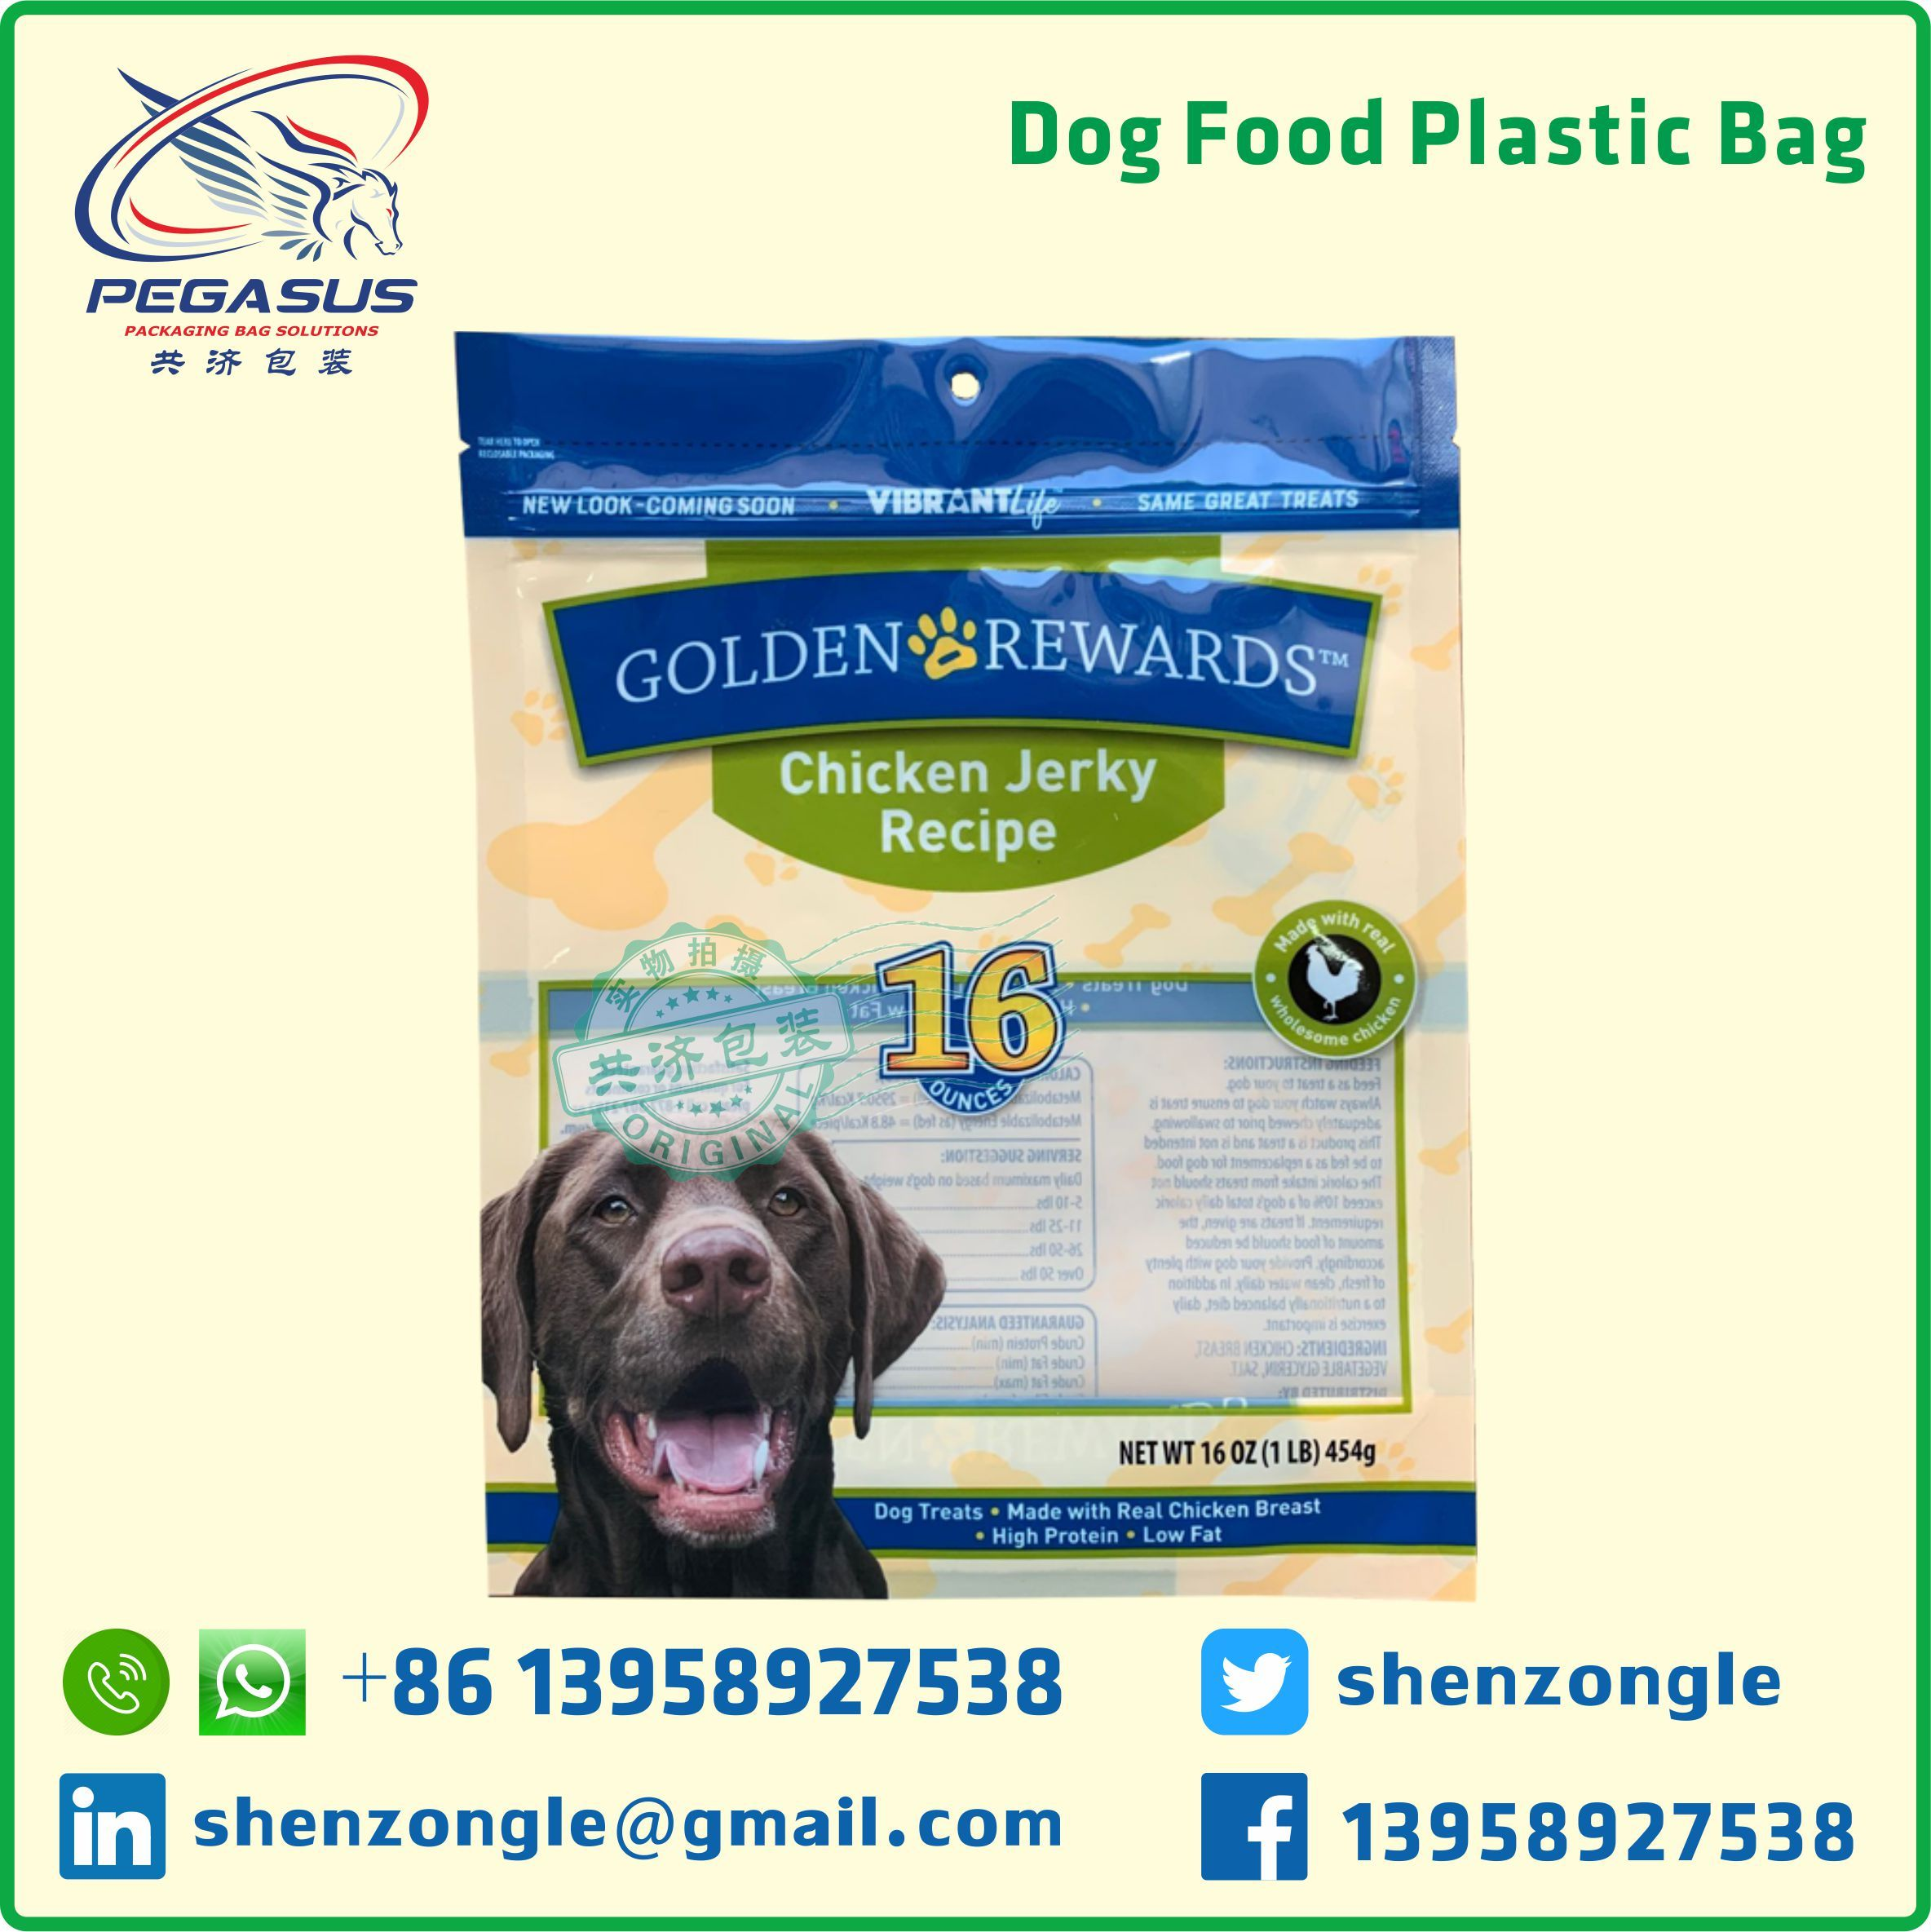 Color Printed Polyethylene Dog Food Bag With Zipper Lock Stand Up